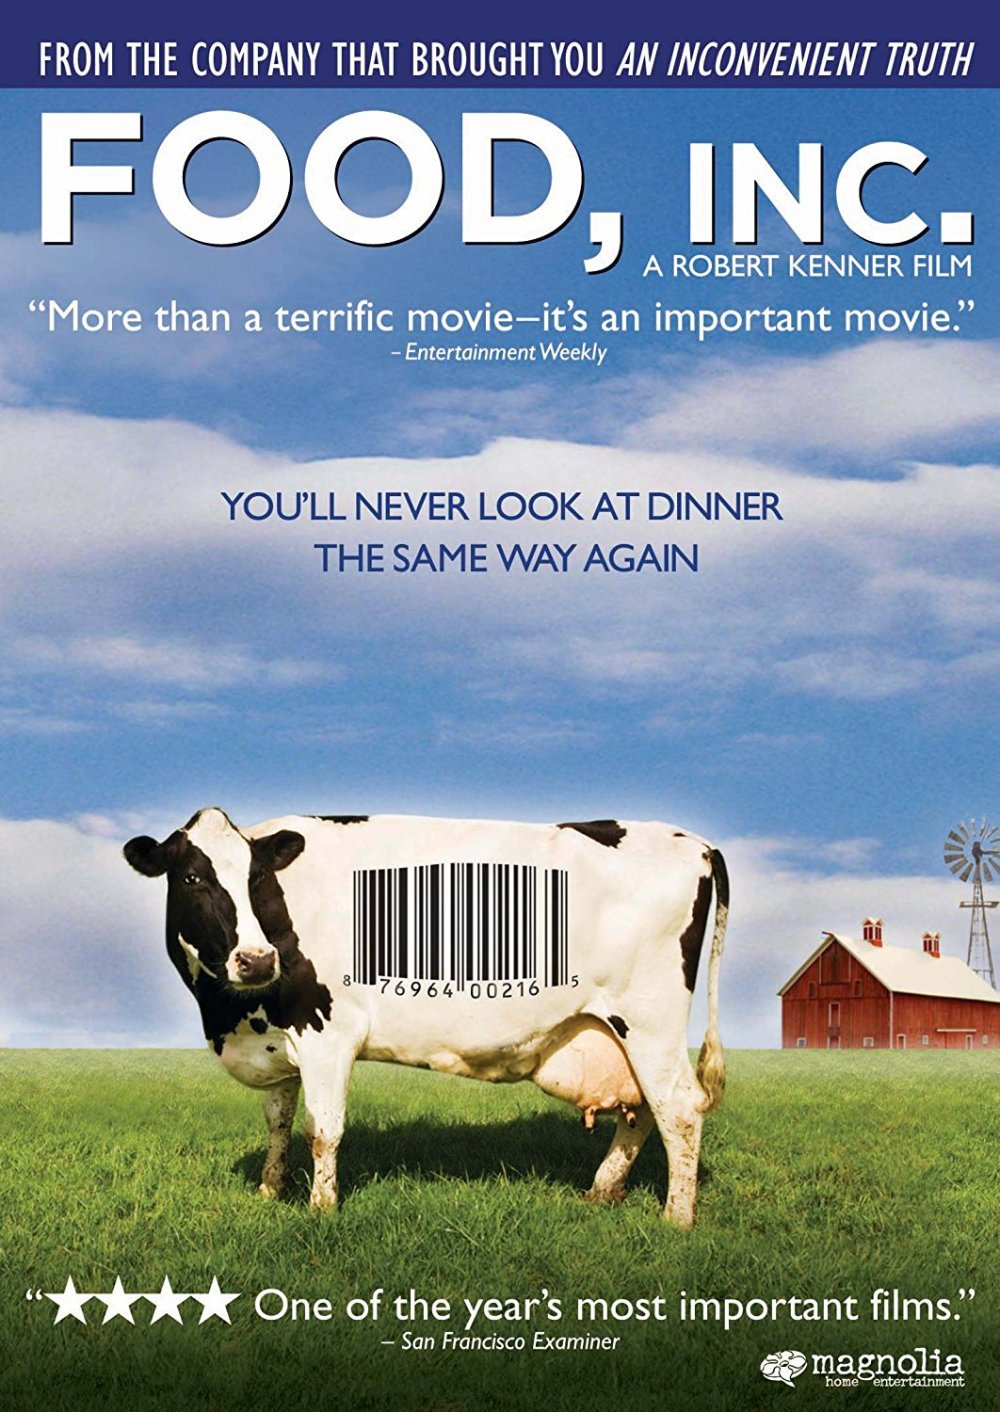 Food Inc pic